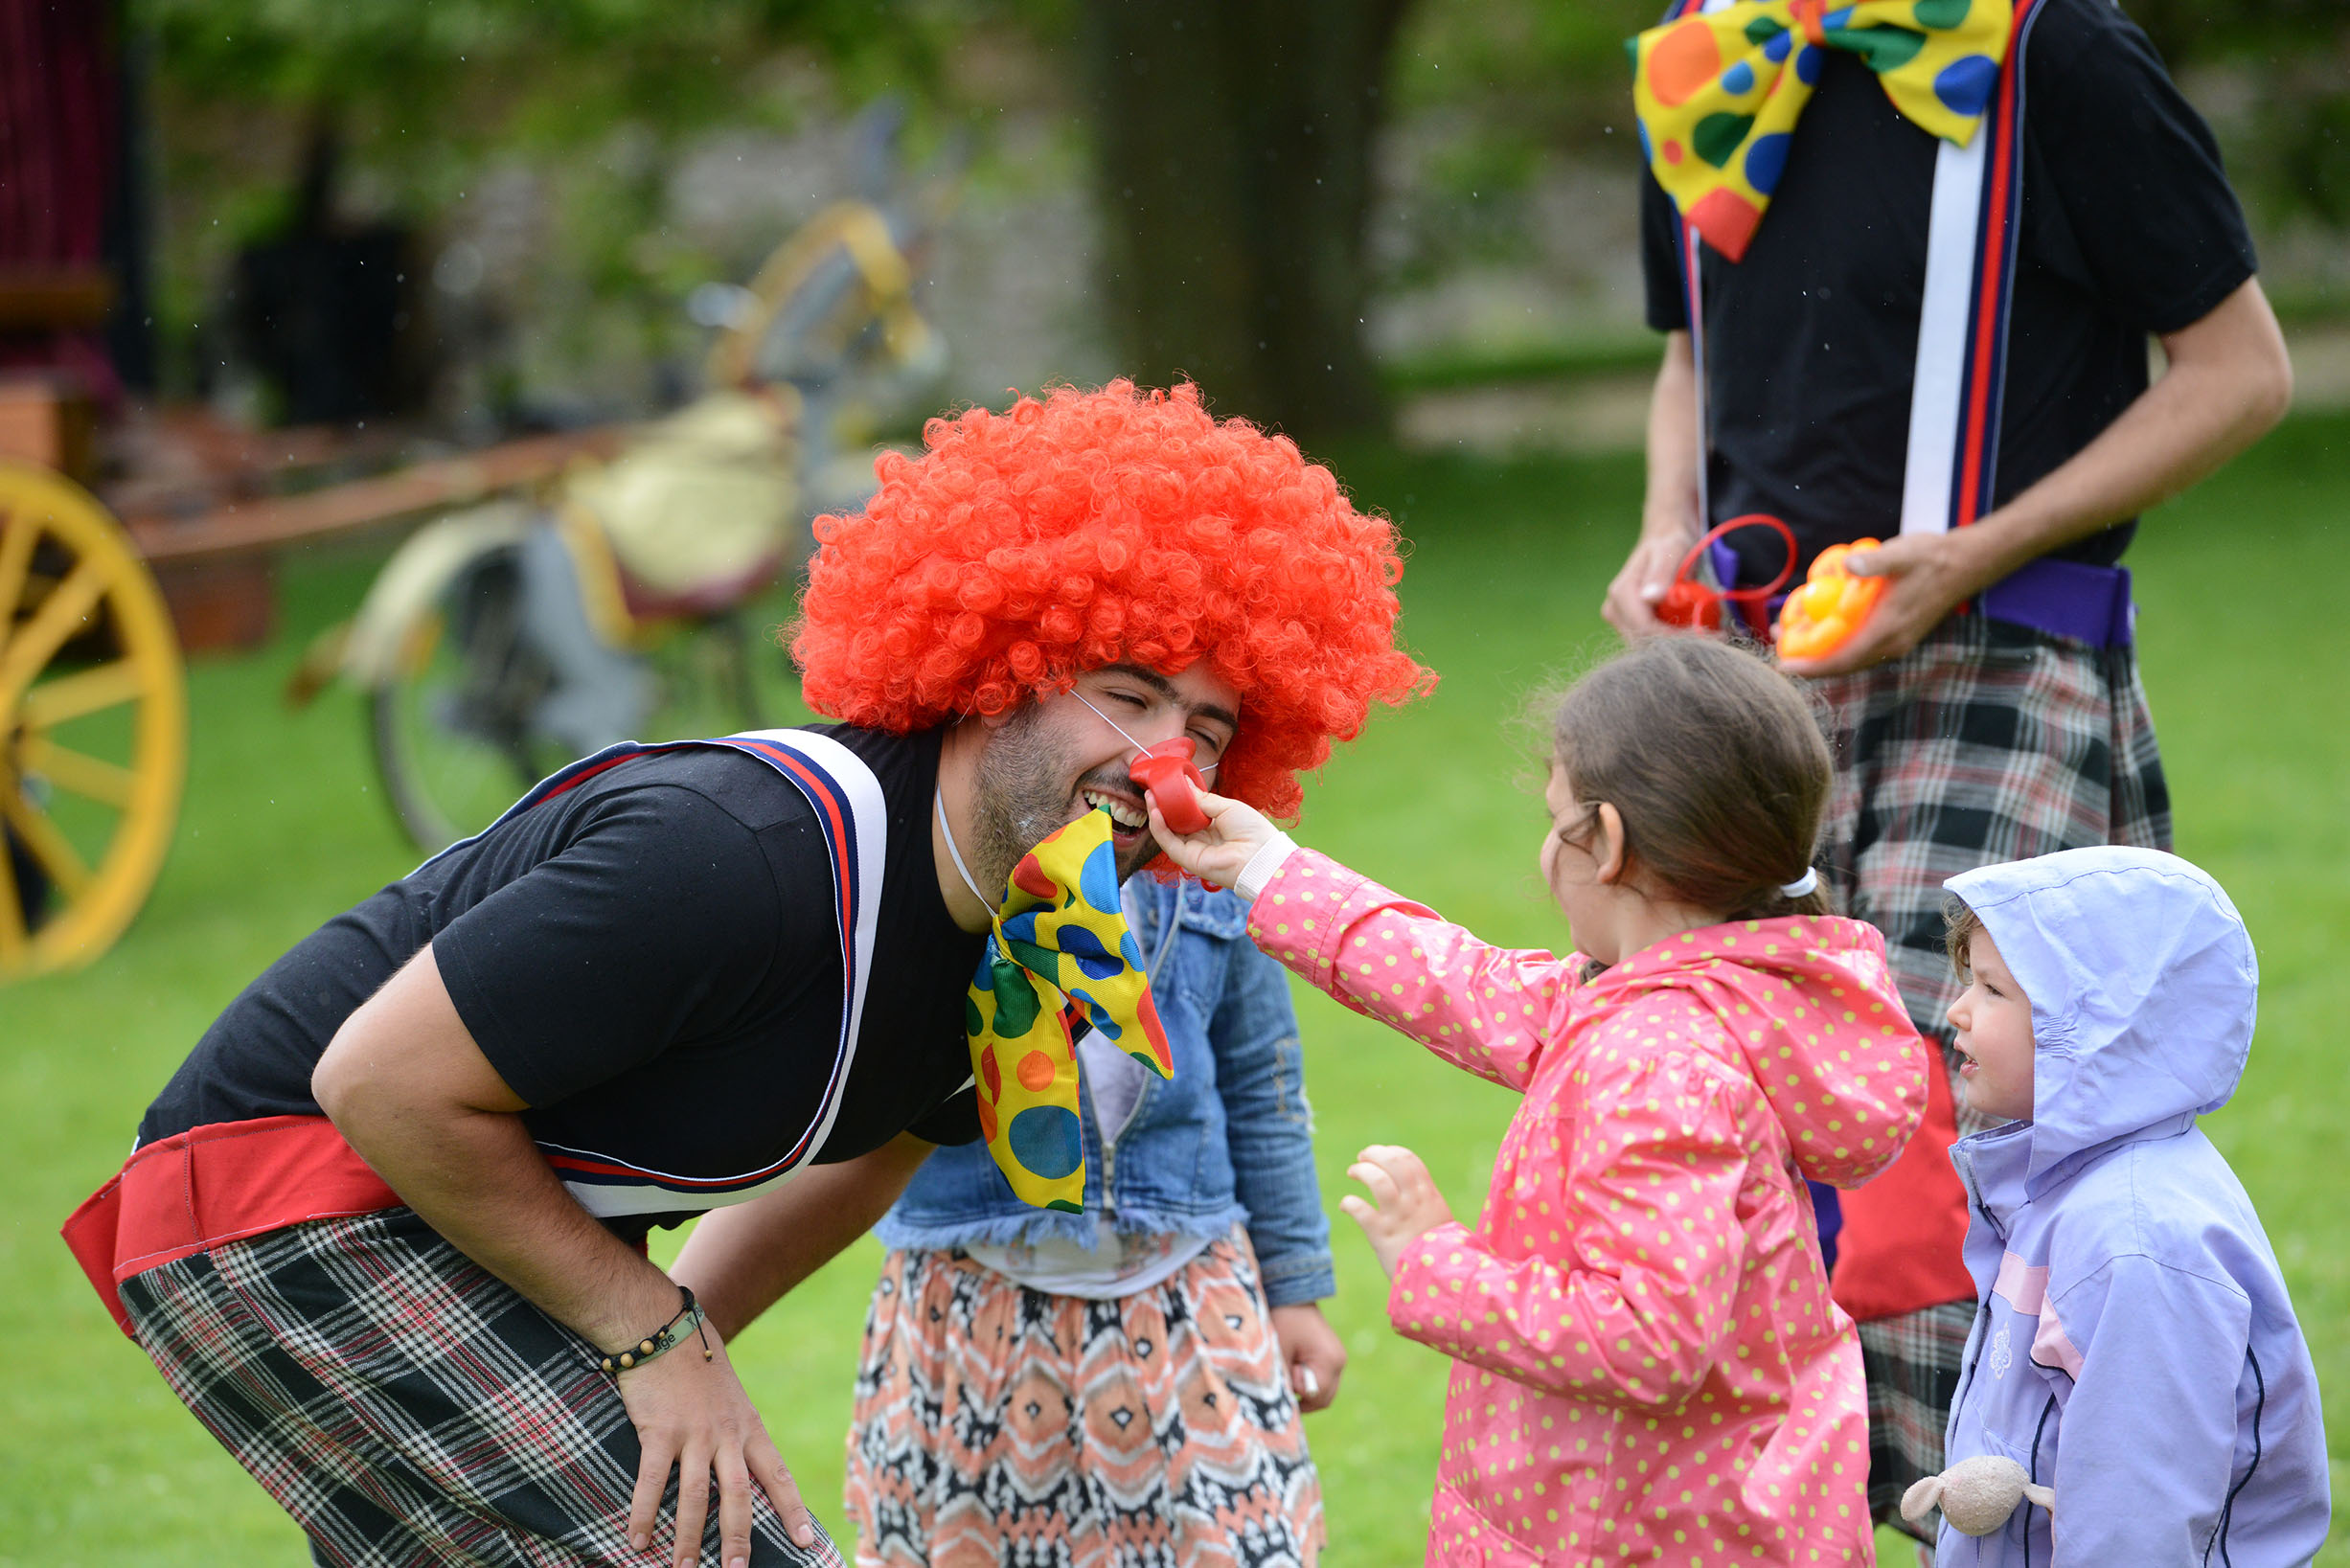 Street theatre and walkabout circus performers: family friendly